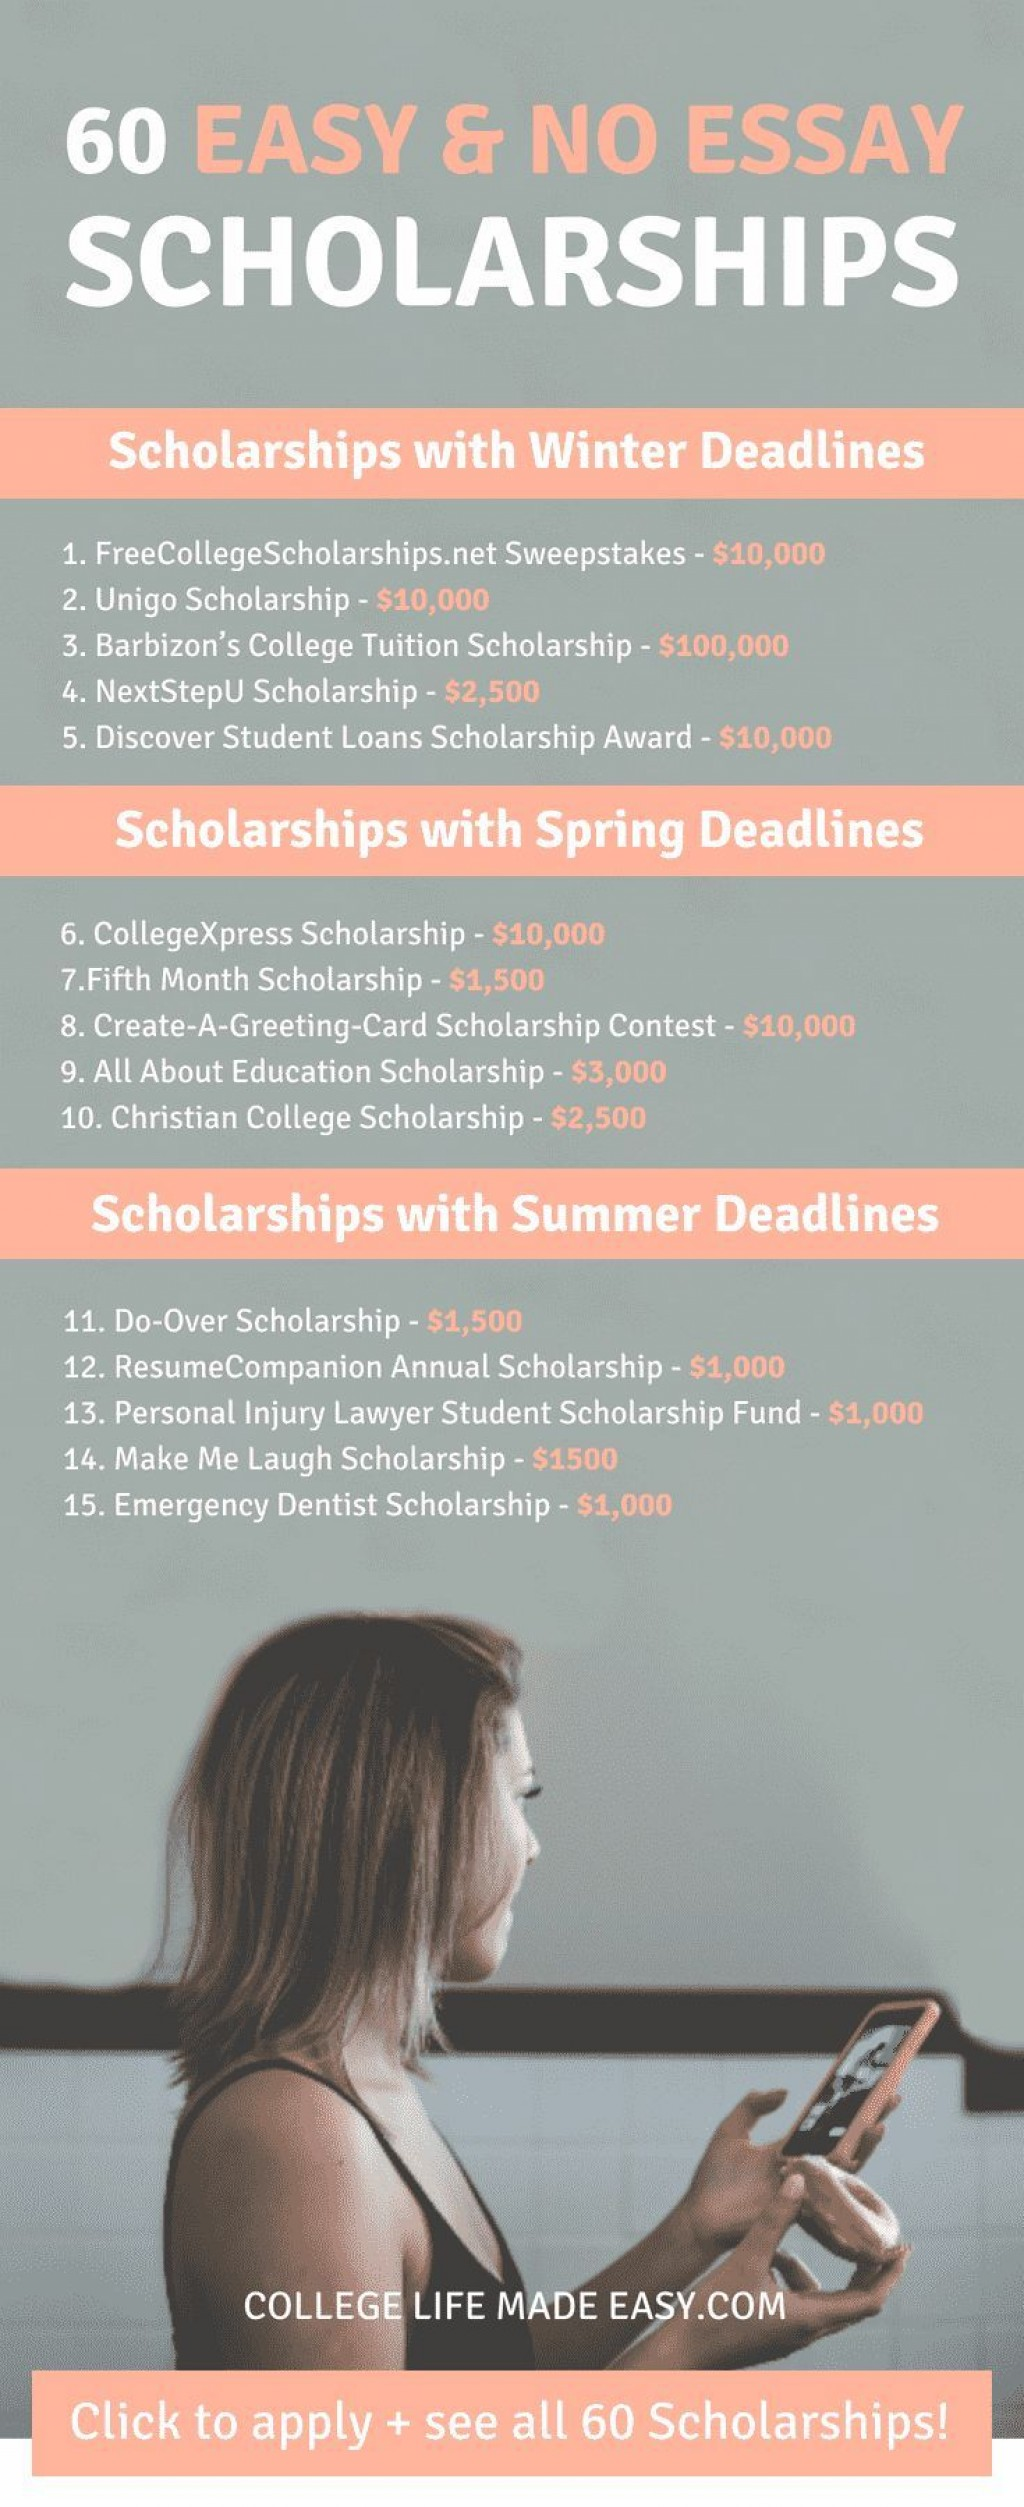 006 No Essay Scholarship Wondrous Scholarships For High School Seniors 2019 Large